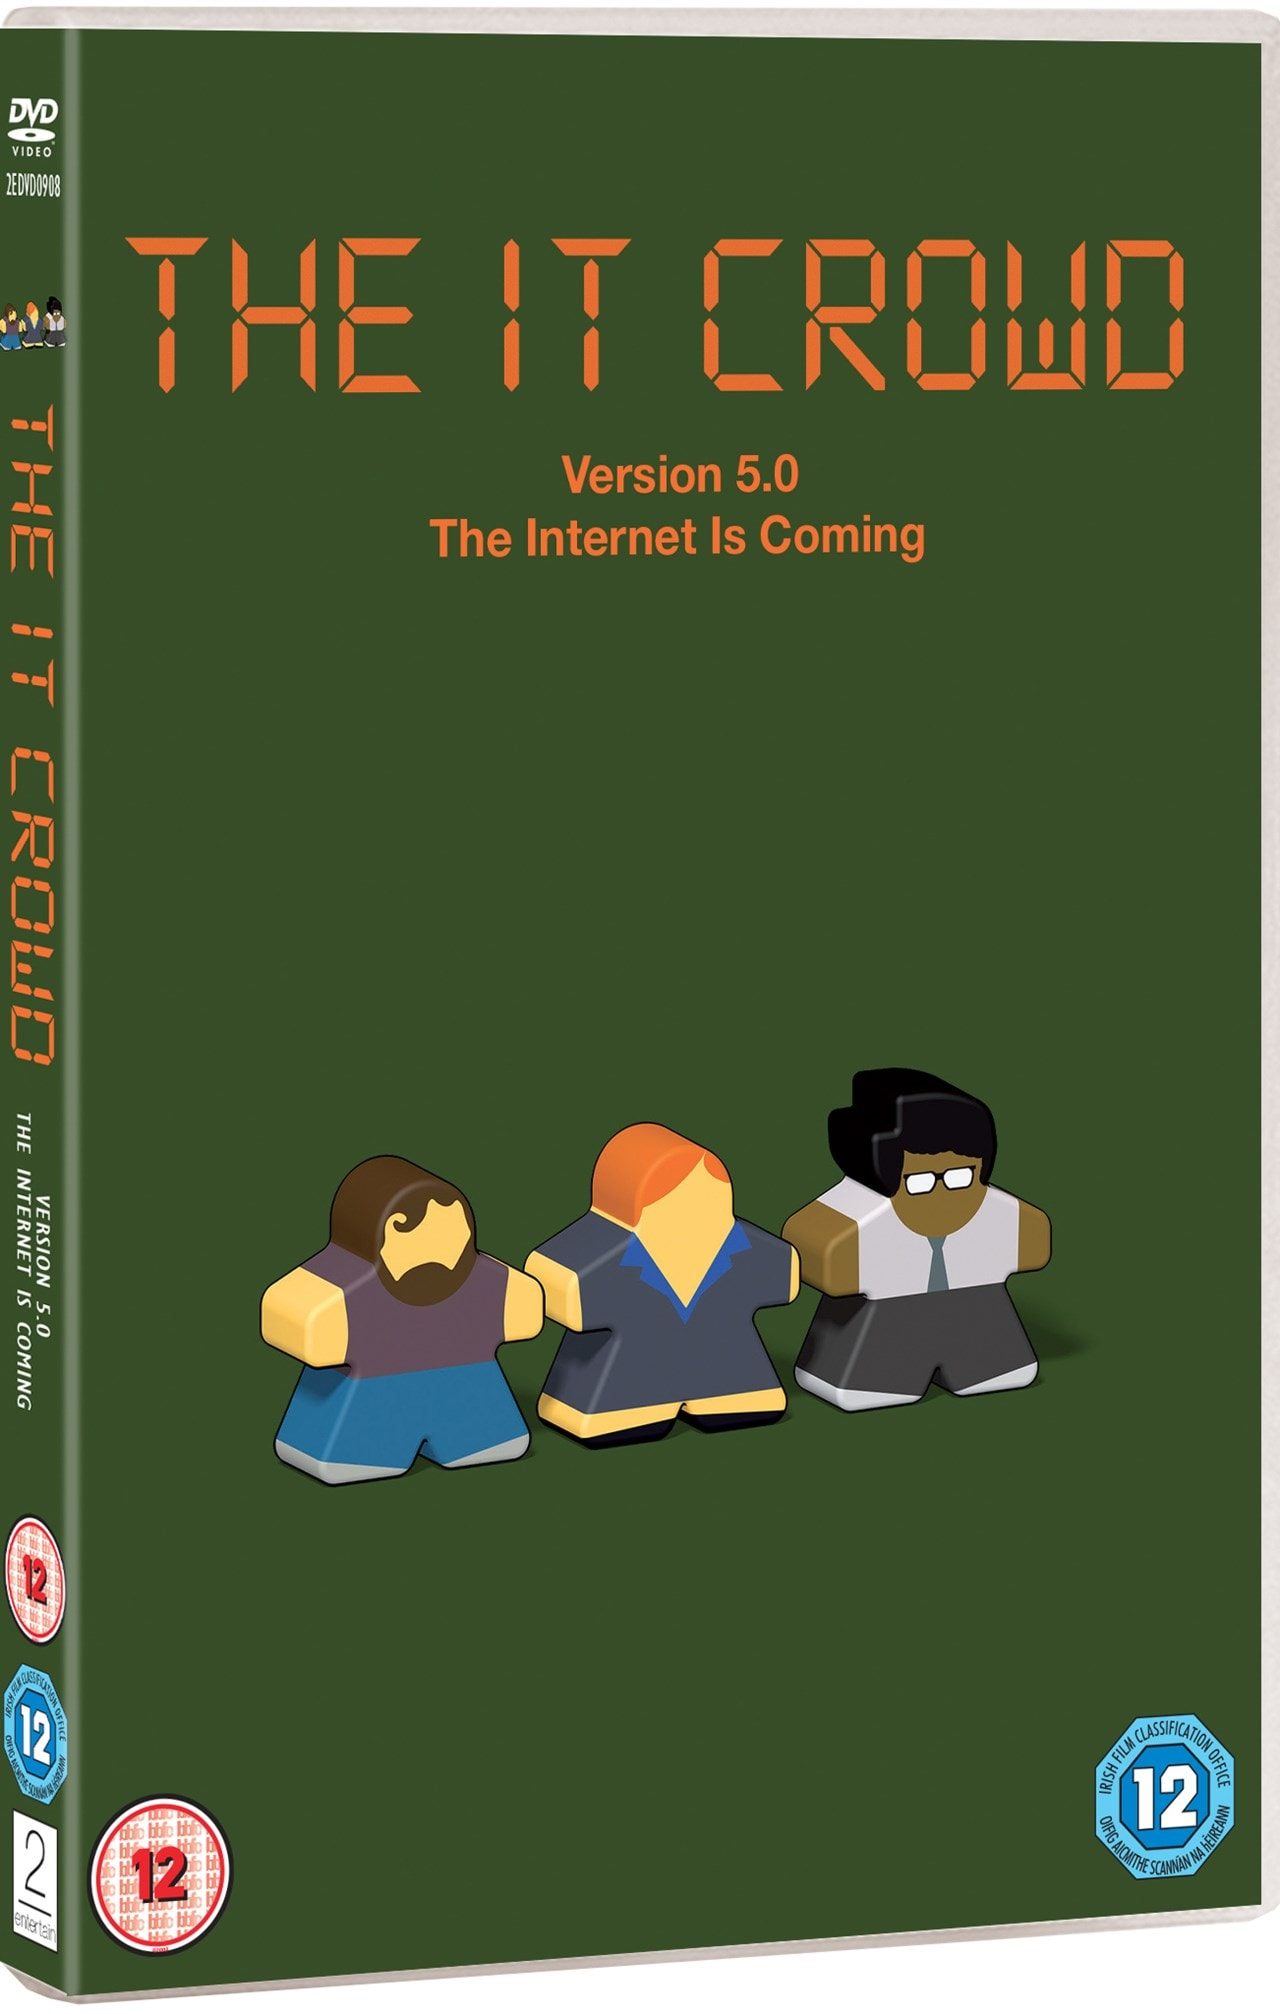 The IT Crowd: Version 5.0 - The Internet Is Coming - 2